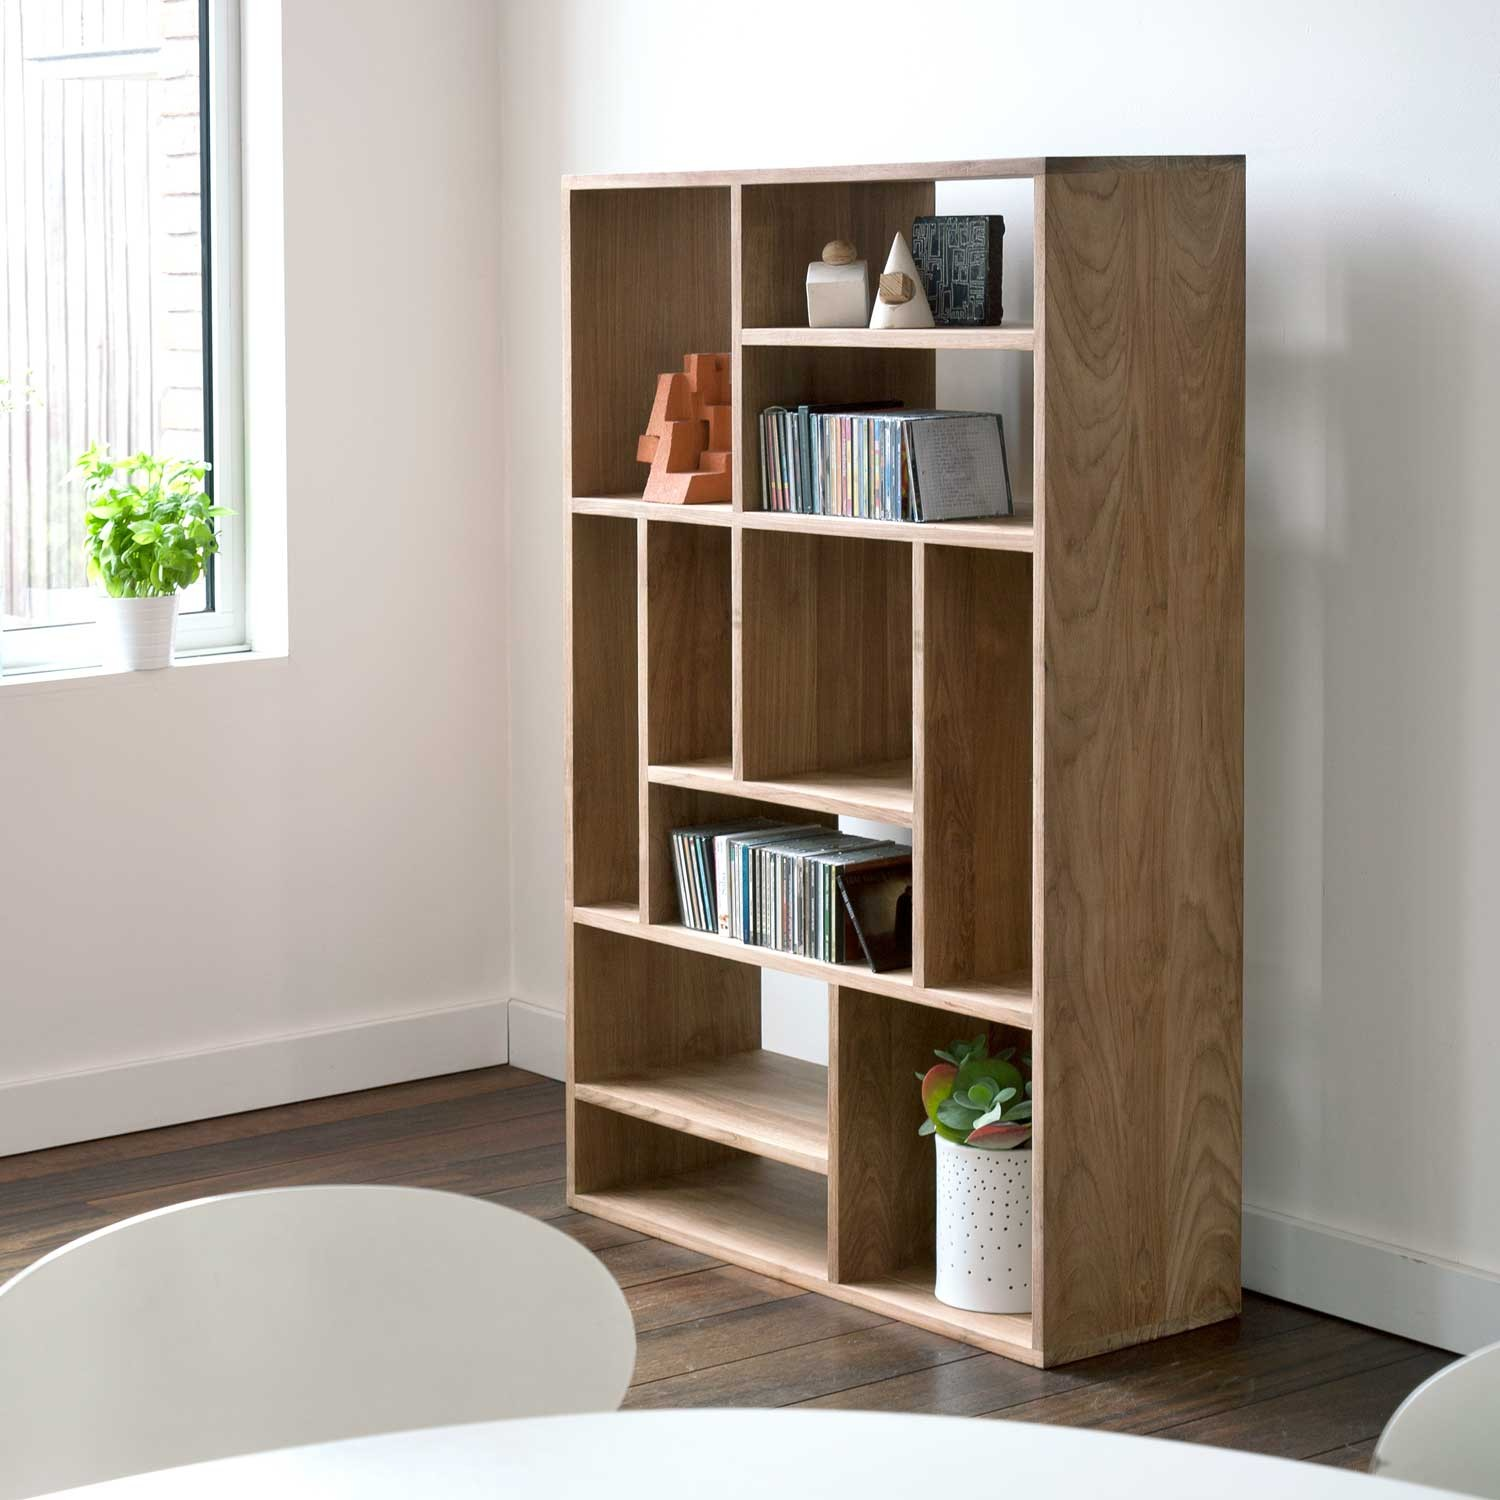 m-bookcase-oak-small